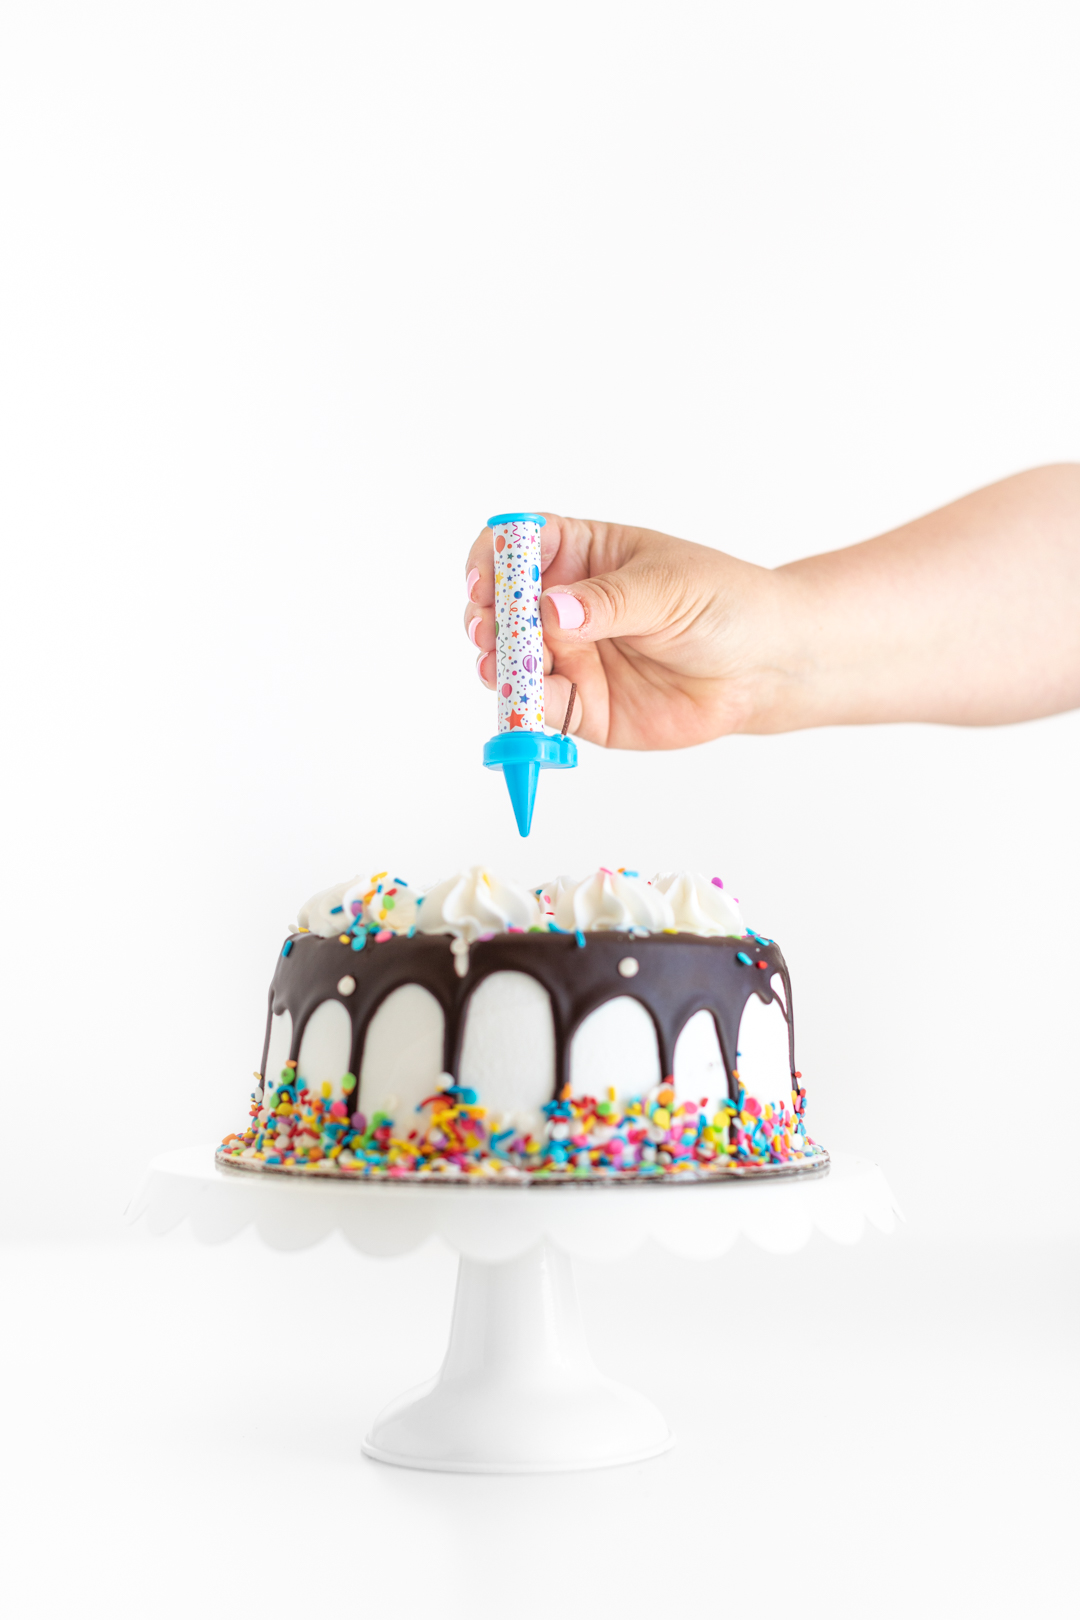 adding a surprise candle on top of a birthday cake